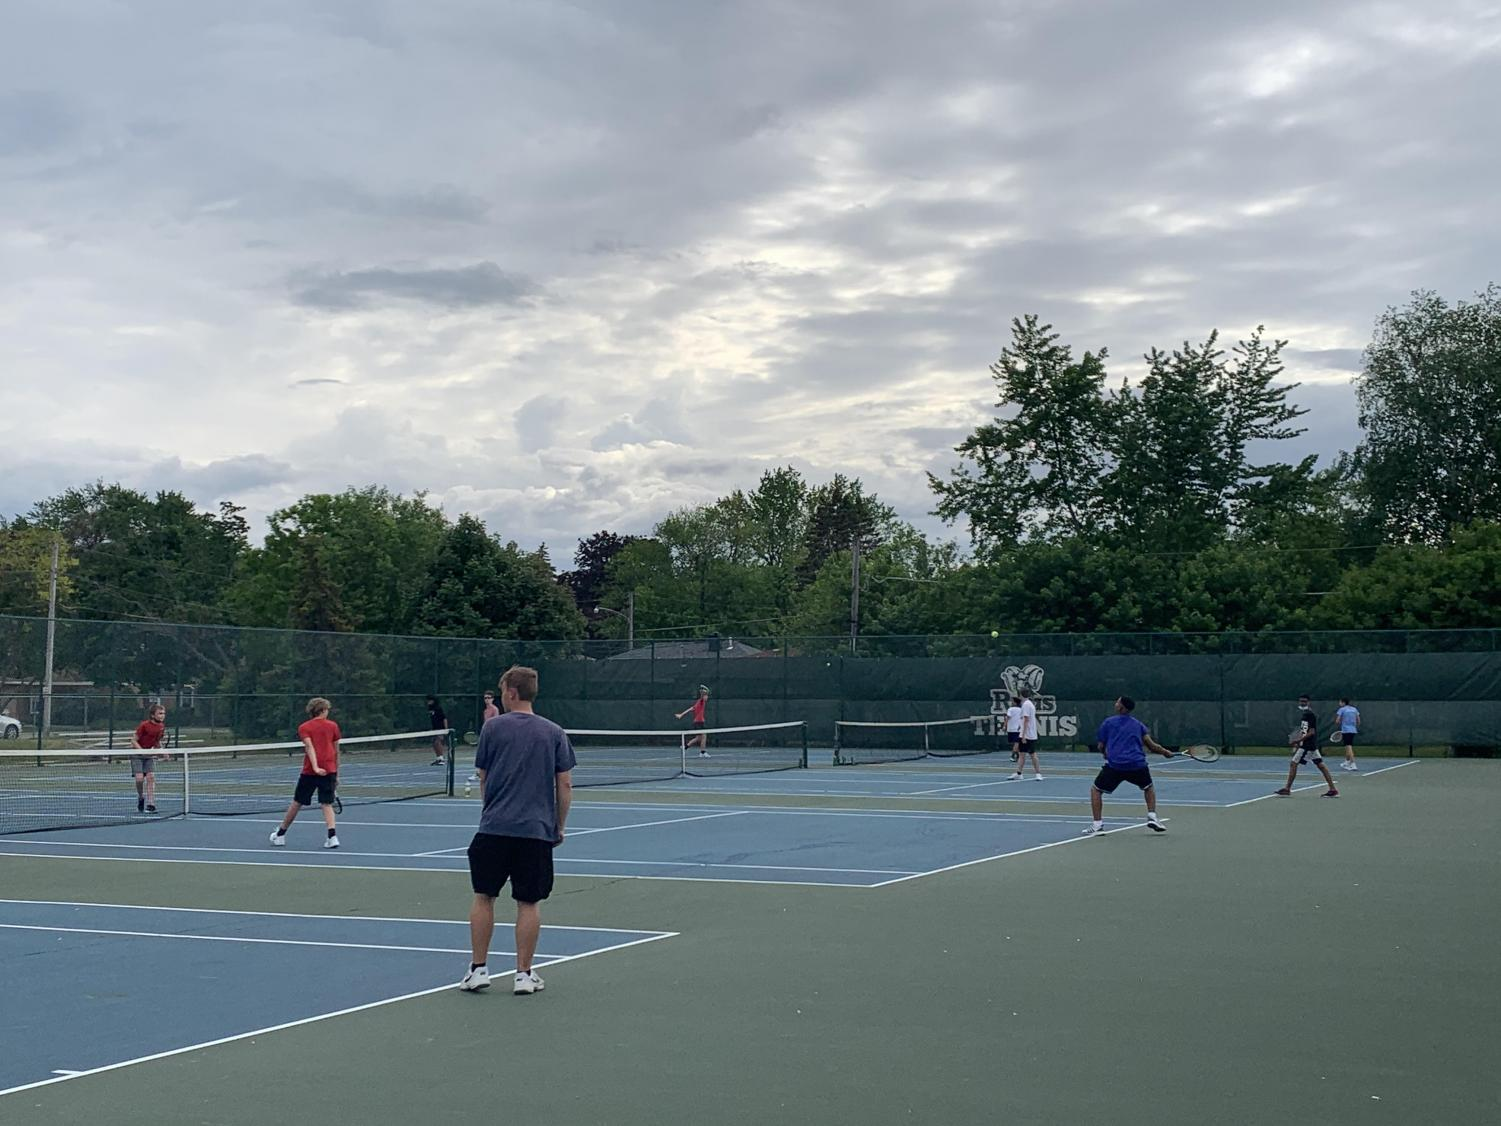 On May 25, 2021, GCHS junior varsity tennis players teamed up with varsity tennis to compete in a tournament during practice. Tennis athletes are not required to wear face masks during practice, but they still maintain social distancing.